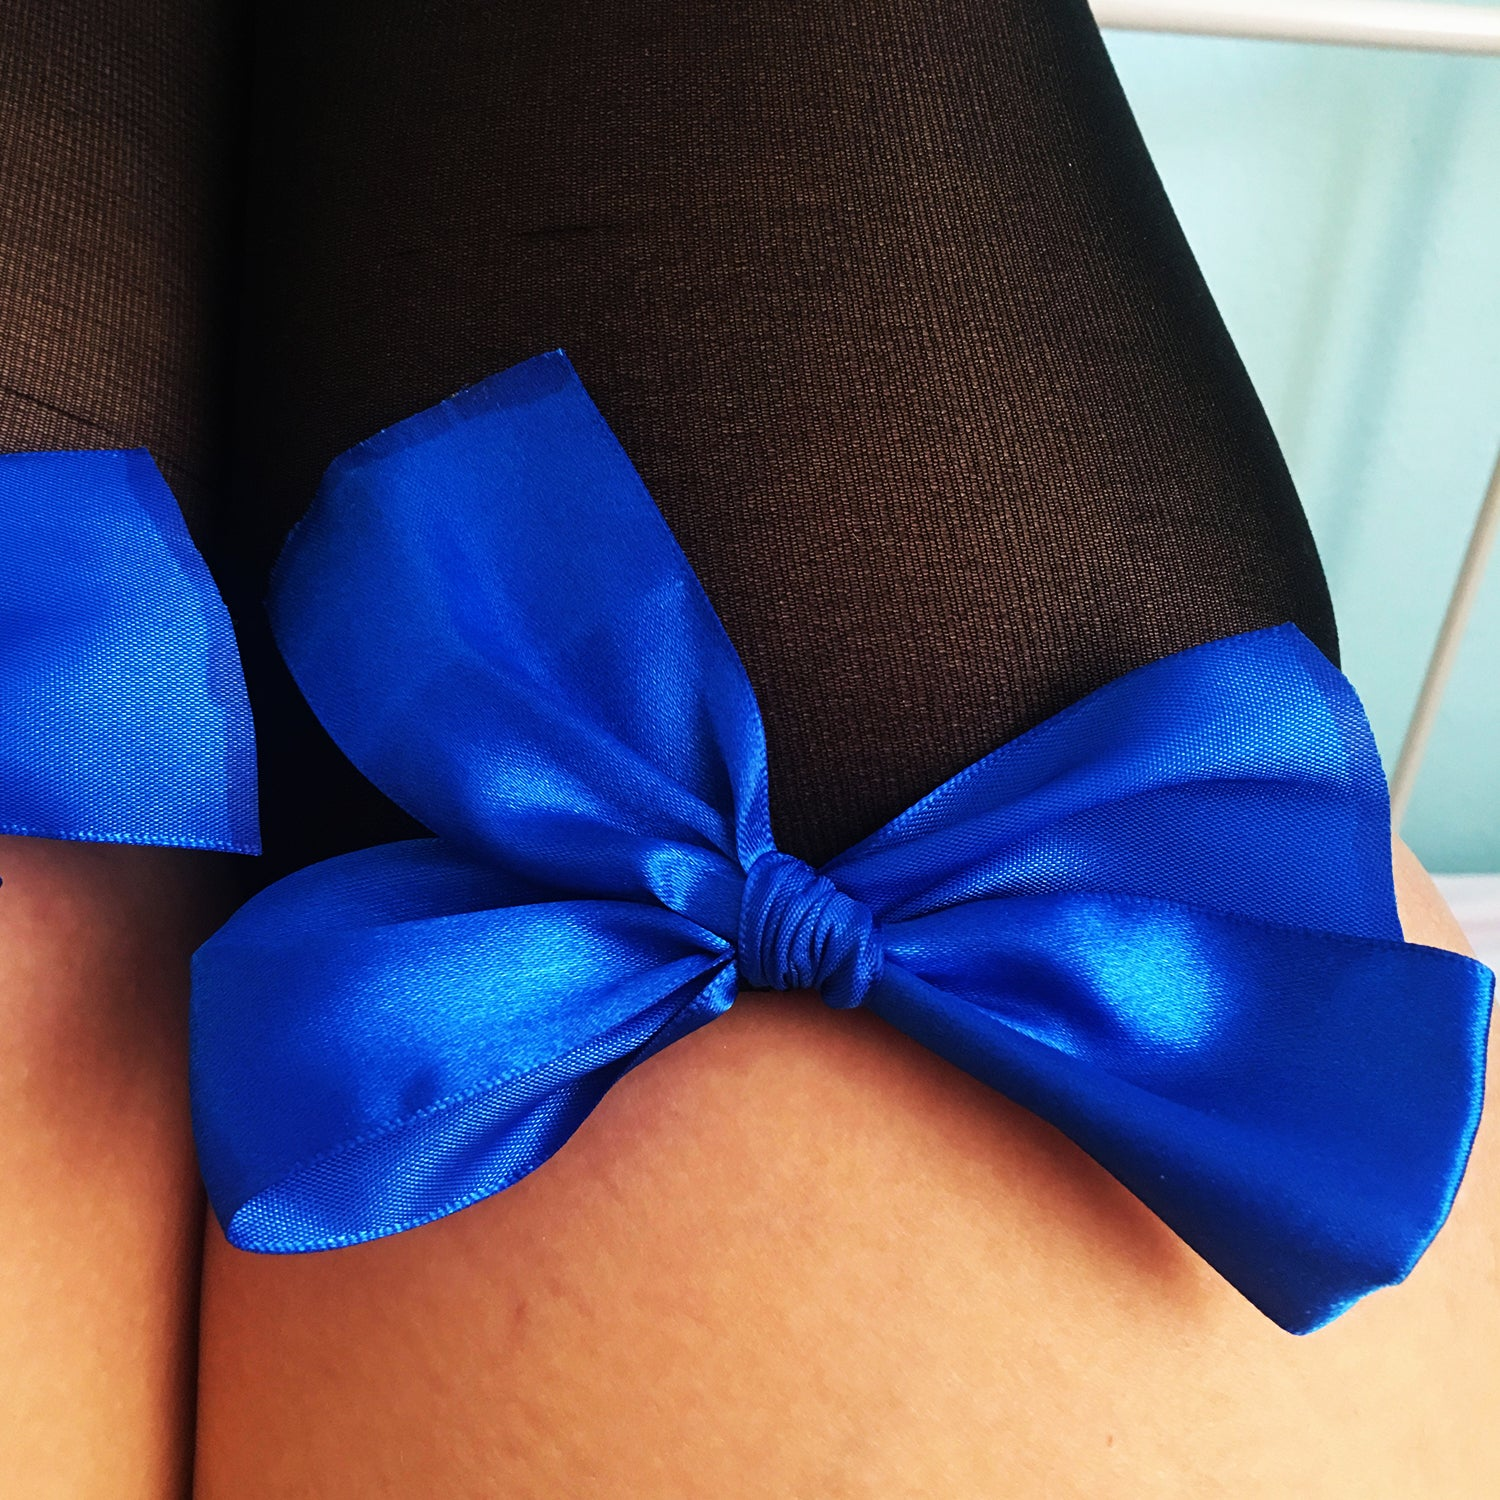 SALE Ava Pin-Up Black With Royal Blue Bows Thigh High Stockings - Plus Size Available - Cherrylingerie